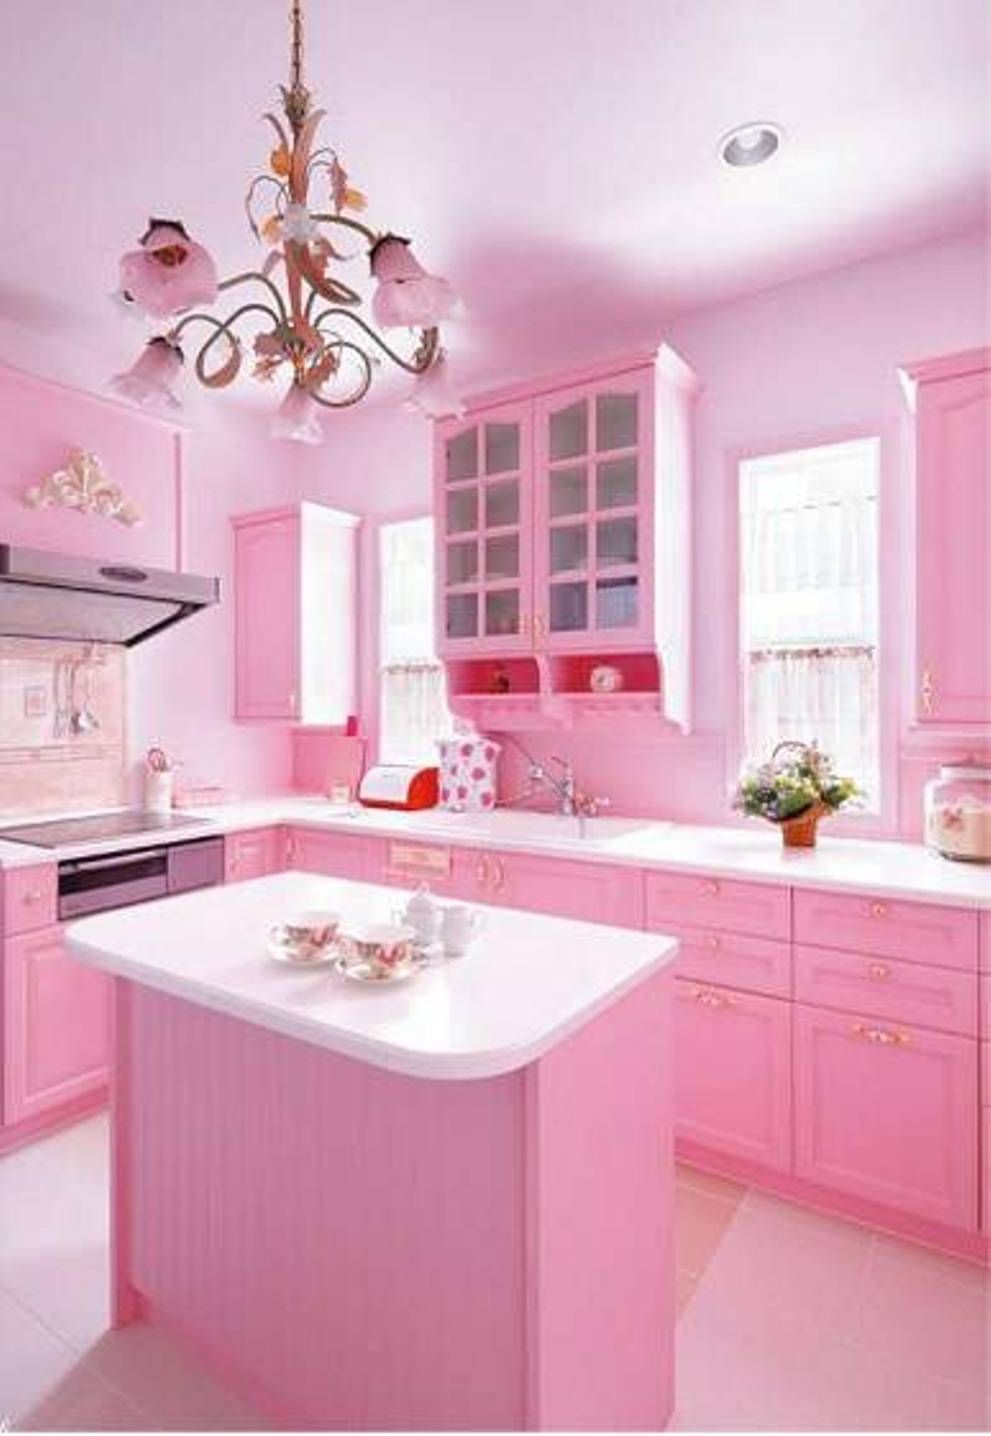 Pink Kitchen Cabinets home design and decor , adorable pink room design in the house